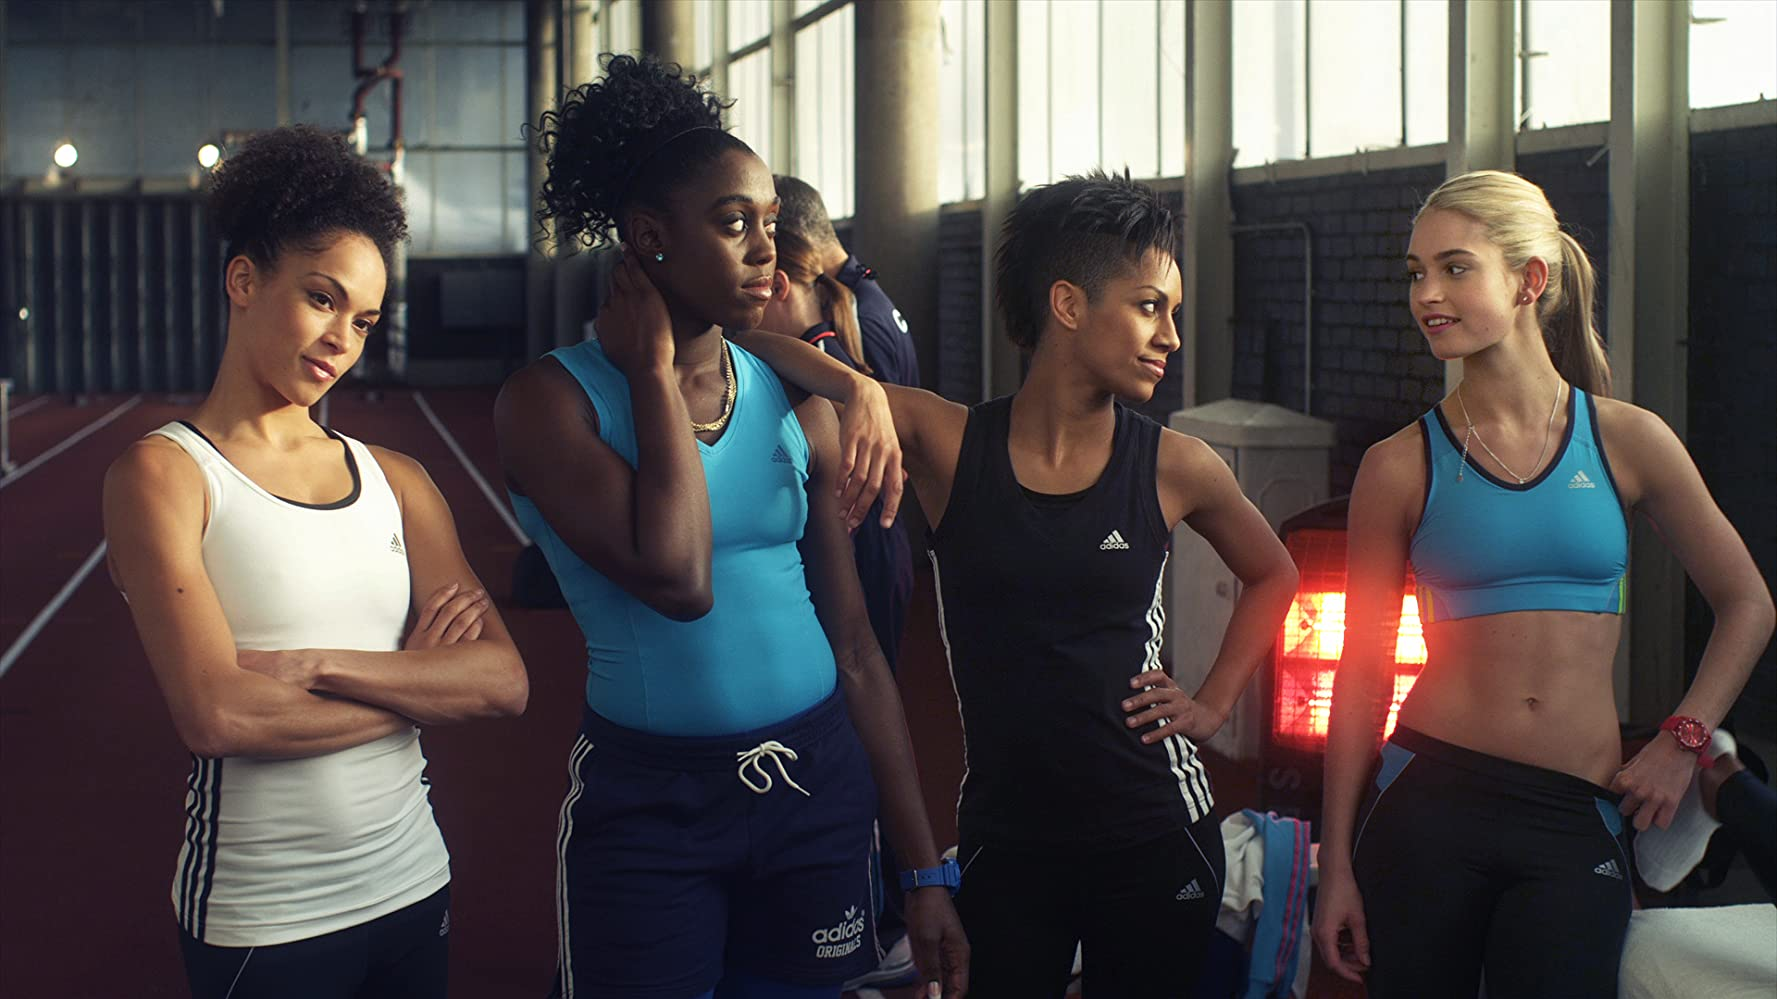 Lashana Lynch, Lily James, Dominique Tipper, and Hannah Frankson in Fast Girls (2012)